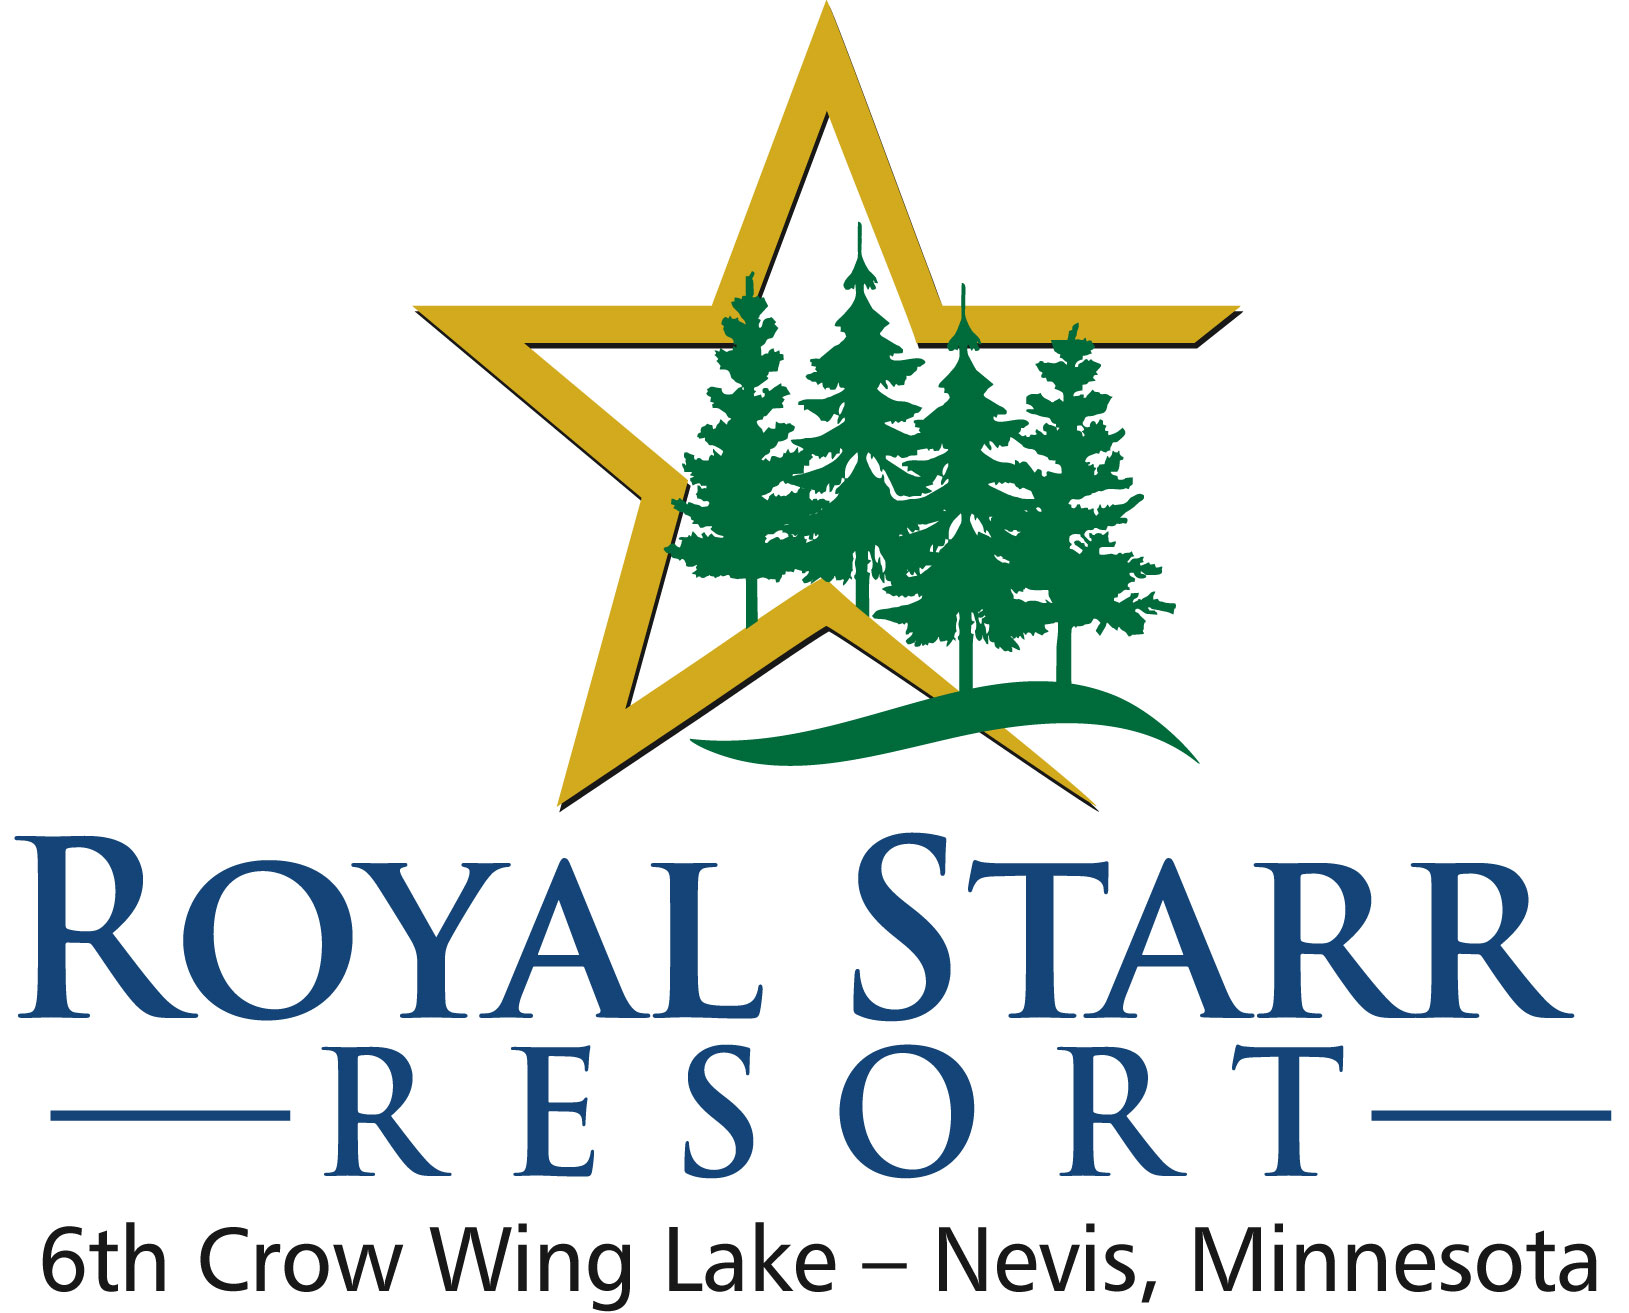 Royal Starr Resort - A Favorite Family Vacation